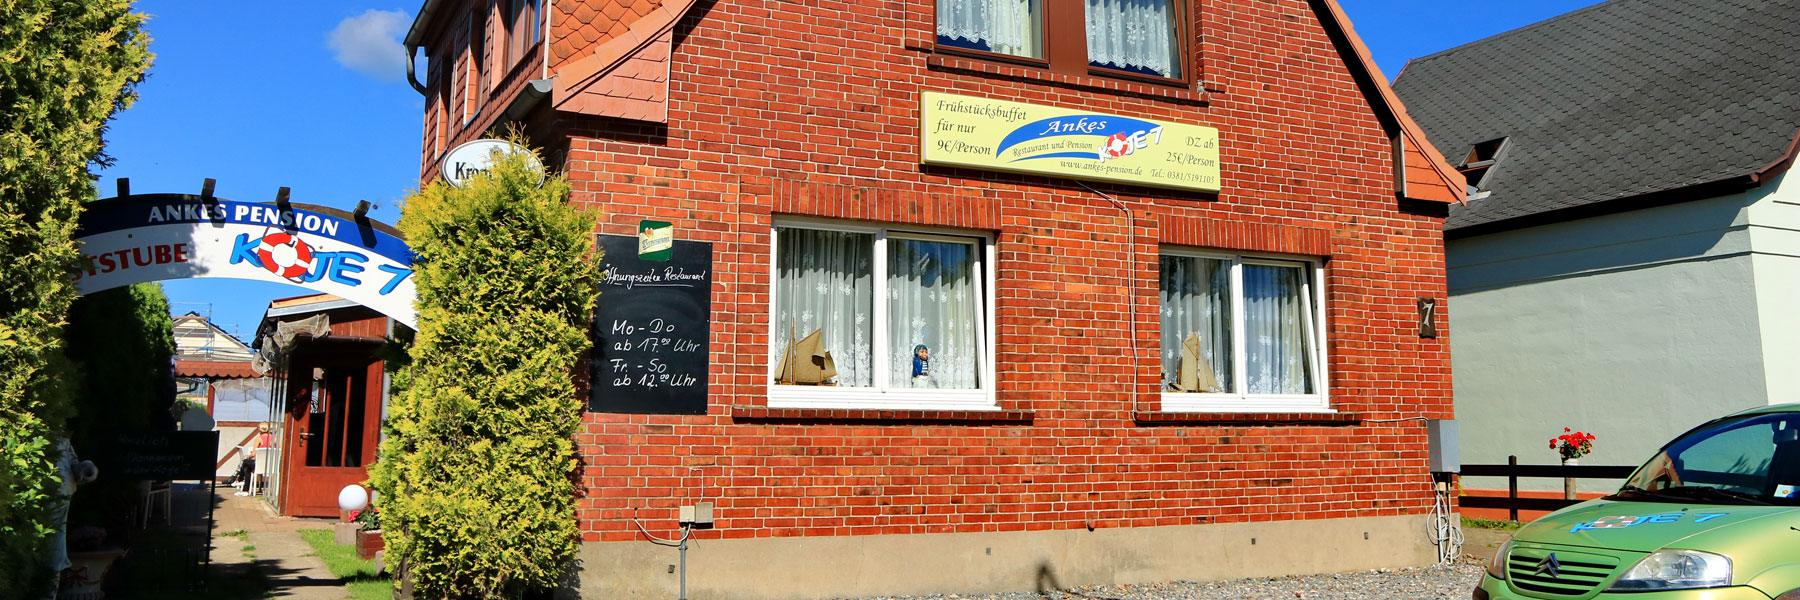 Aussenansicht - Ankes Restaurant & Pension